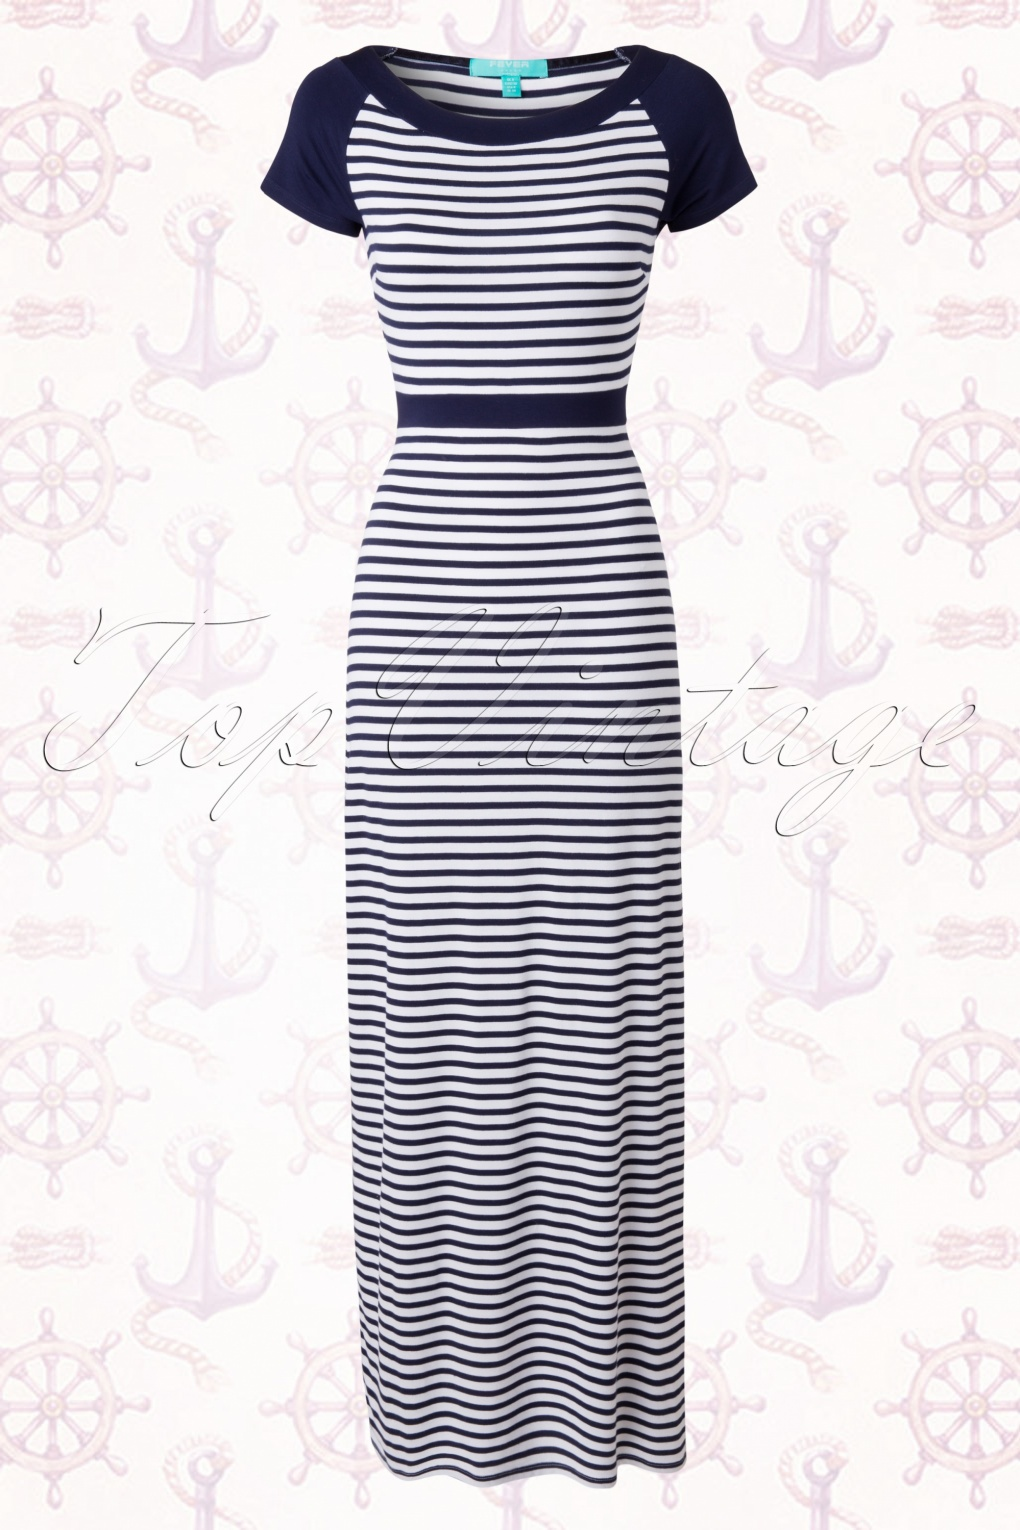 Blauw Wit Gestreepte Maxi Jurk.50s Brighton Striped Maxi Dress In Navy And White